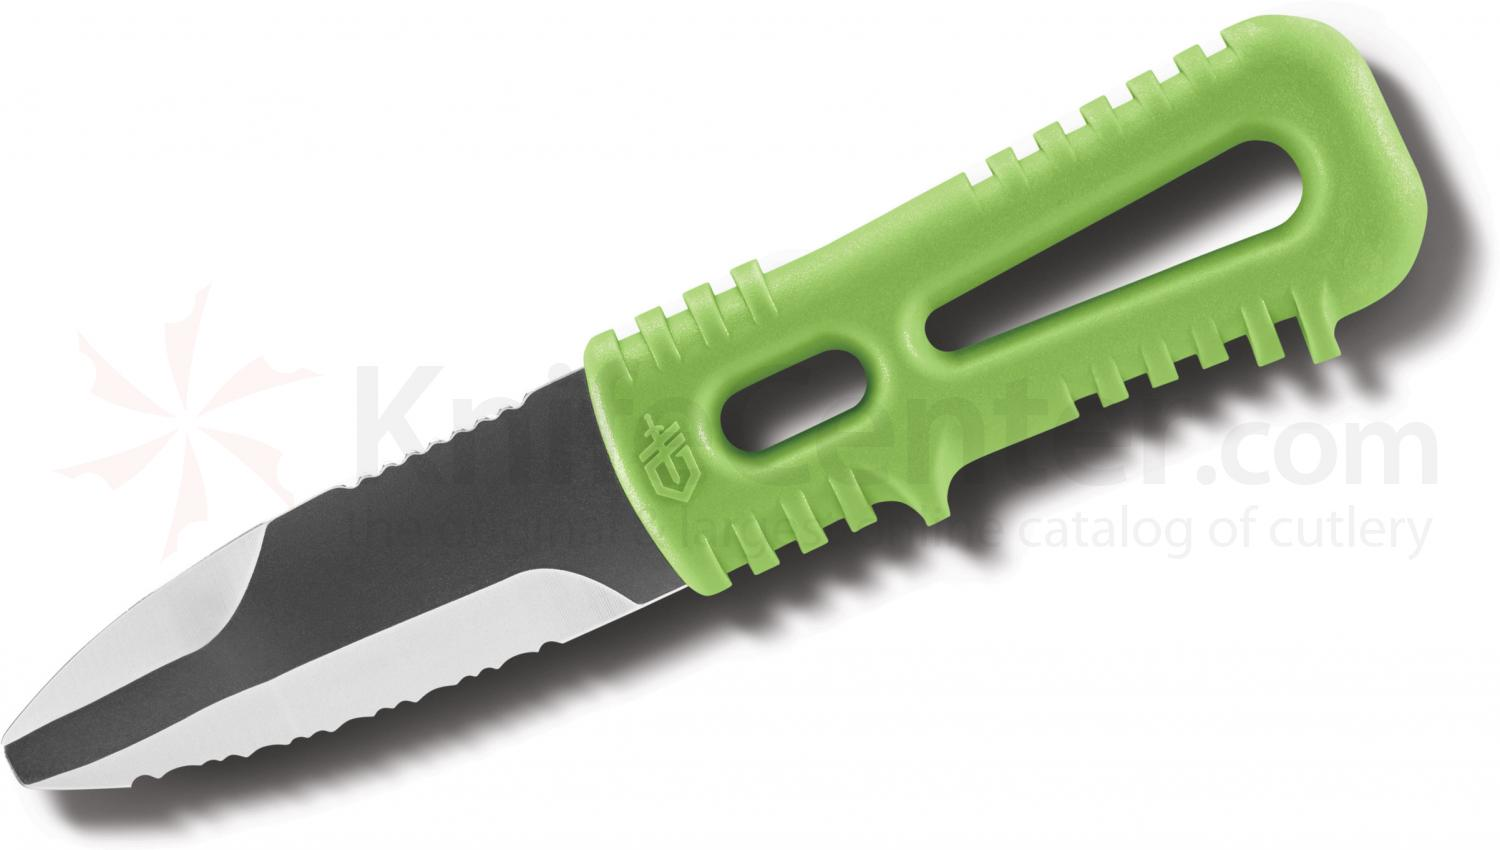 Gerber River Shorty Dive Knife 3 inch Double Edge Blunt Tip Blade, Green Zytel Handles, Plastic Sheath